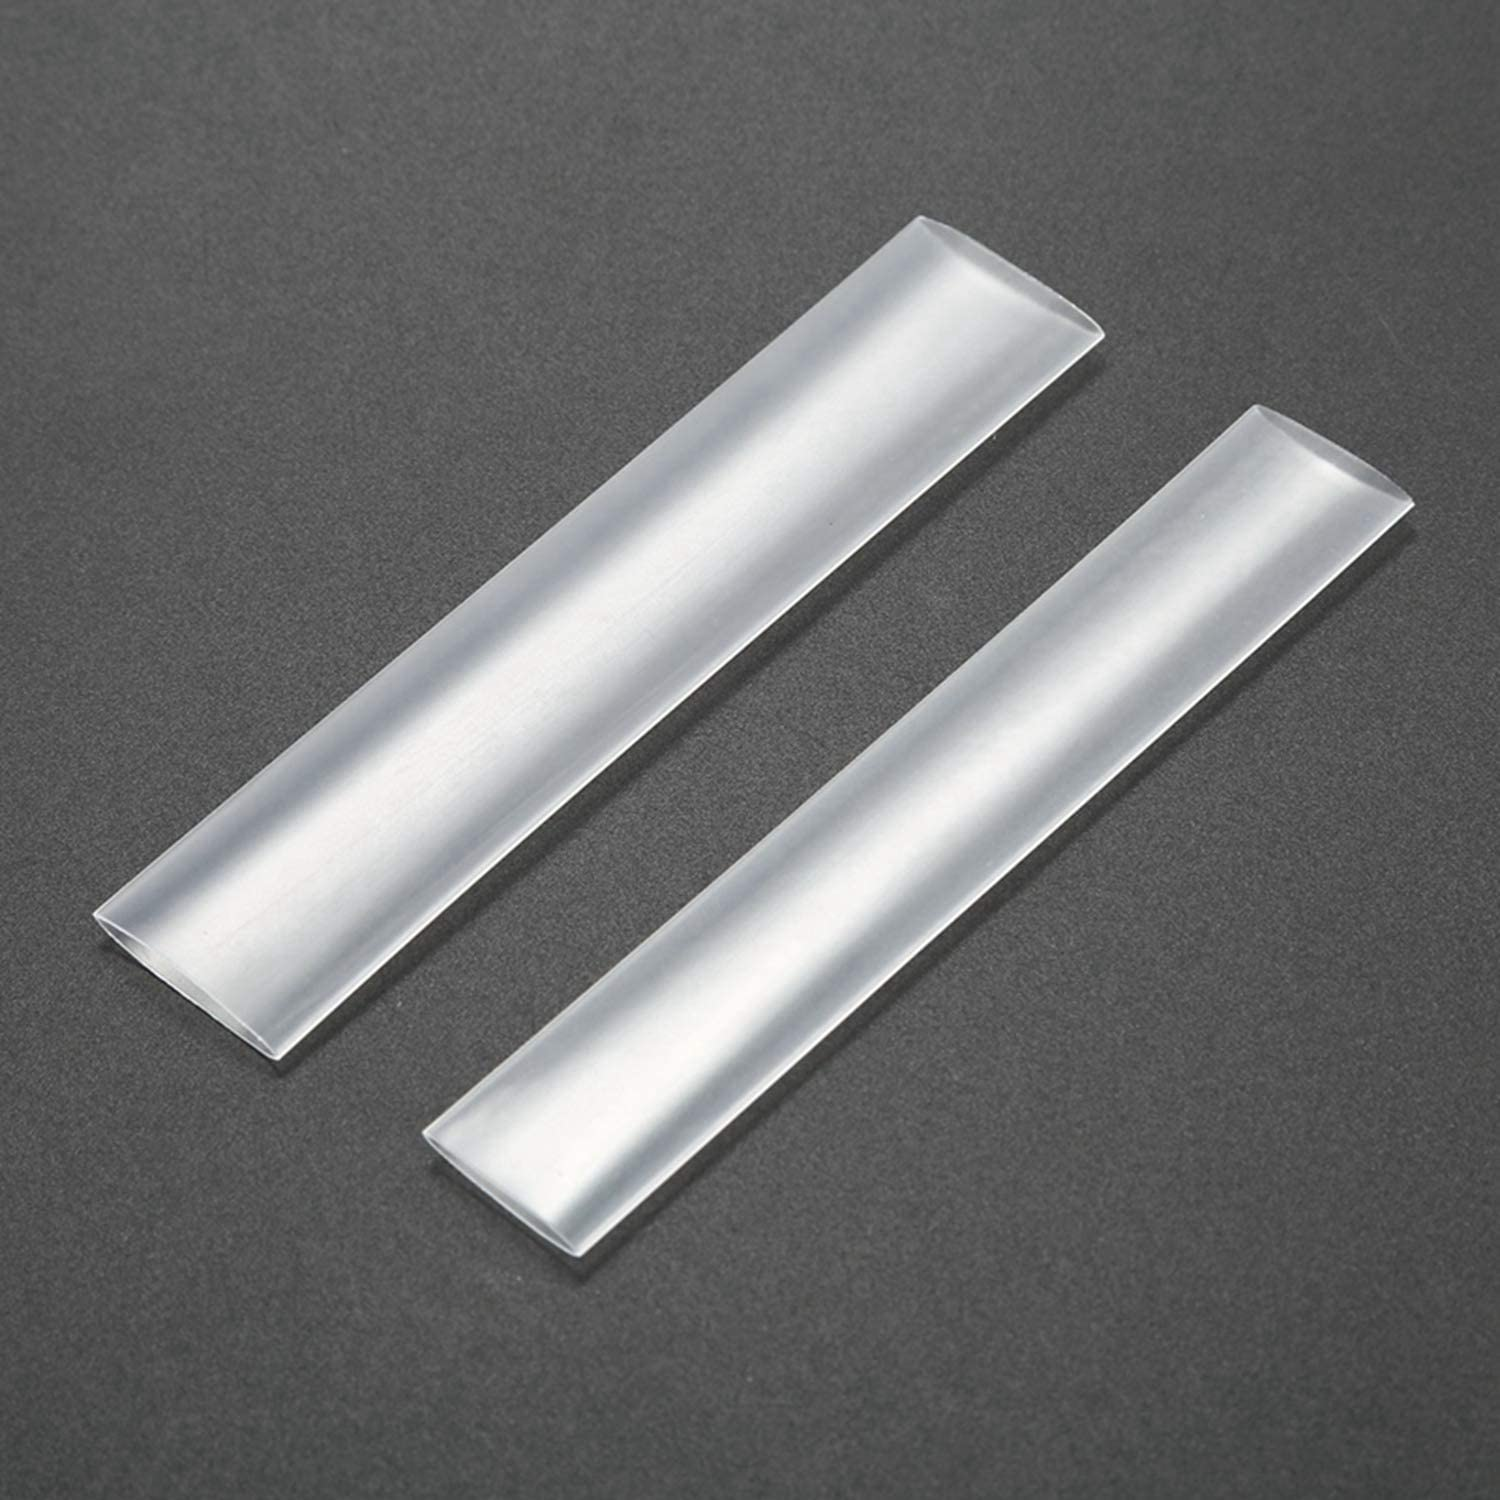 Fltaheroo 100 Pcs Tube Thermor/éTractable BooTier Couleur Du Tube Thermor/éTractable Transparent